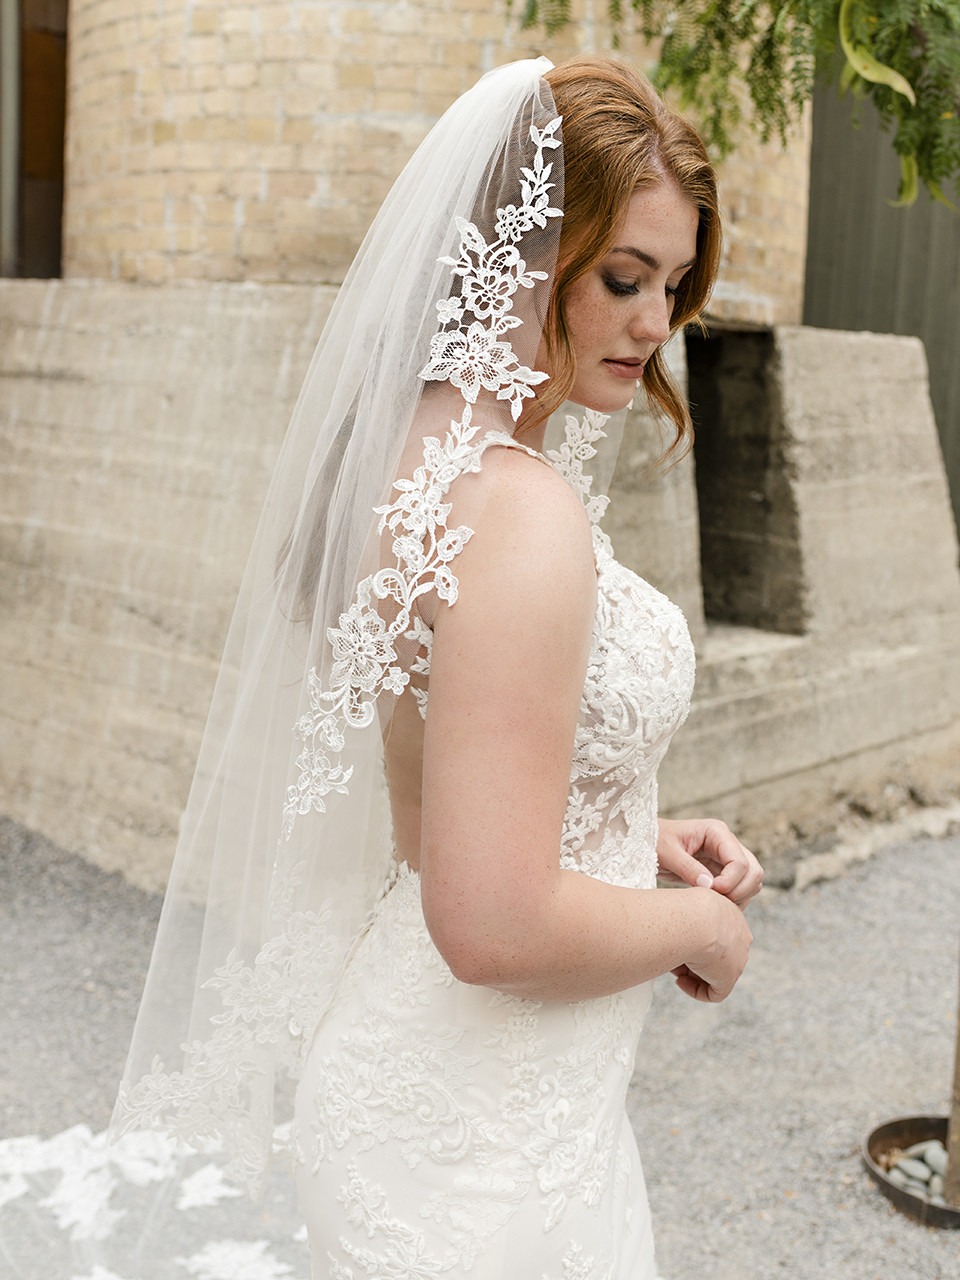 En Vogue Bridal Style V2286SF - English Tulle Bridal Veil With Lace Appliques - 41 Inches